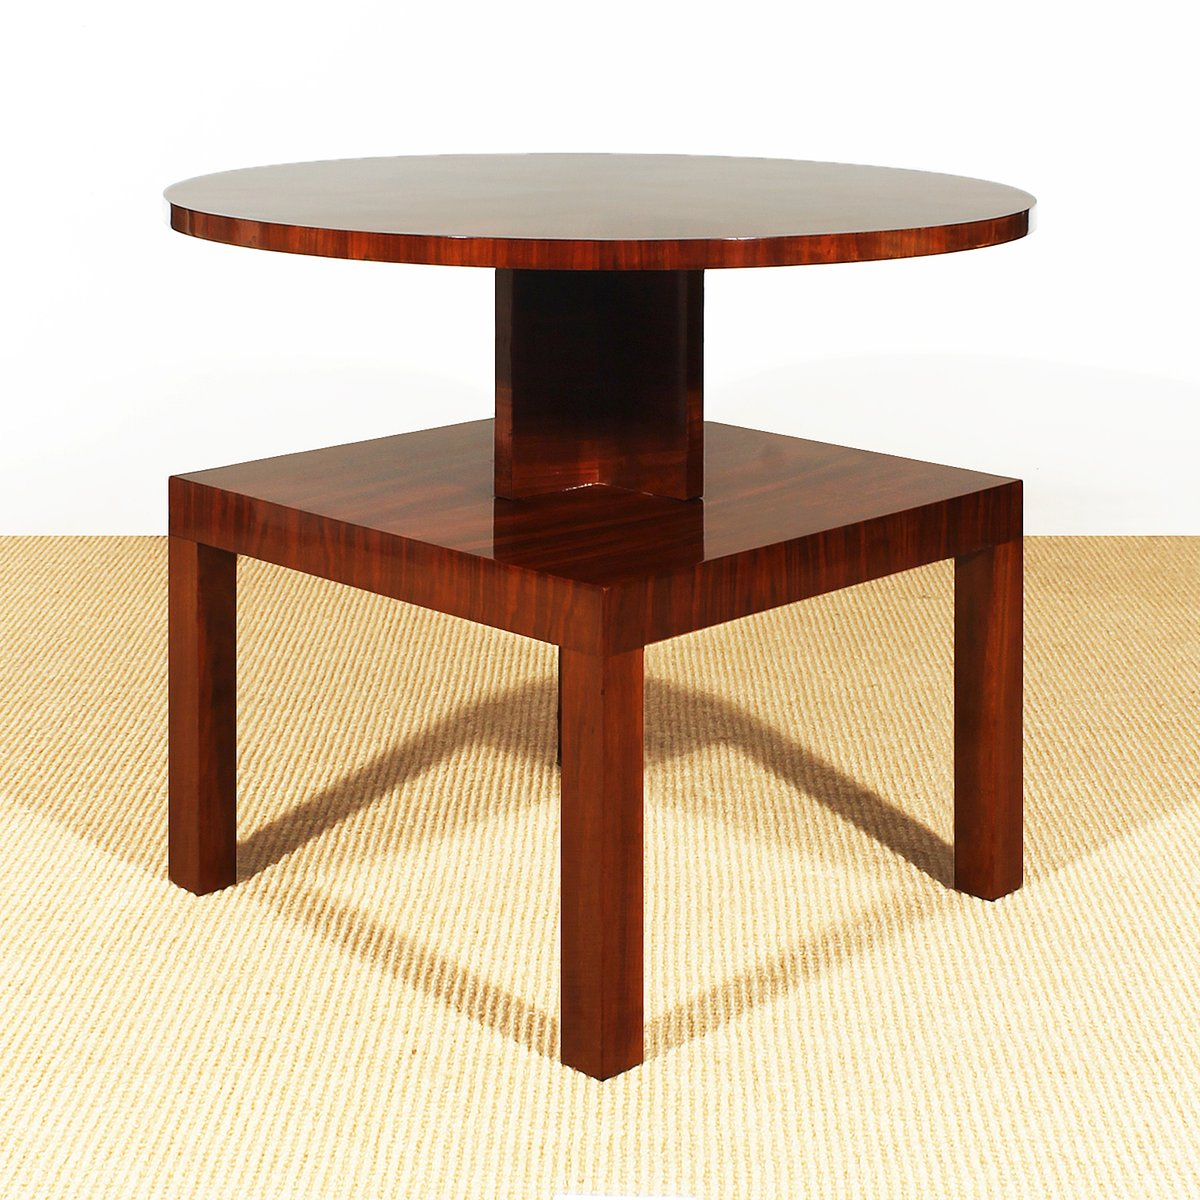 French Art Deco Cubist Side Table, 1930s for sale at Pamono